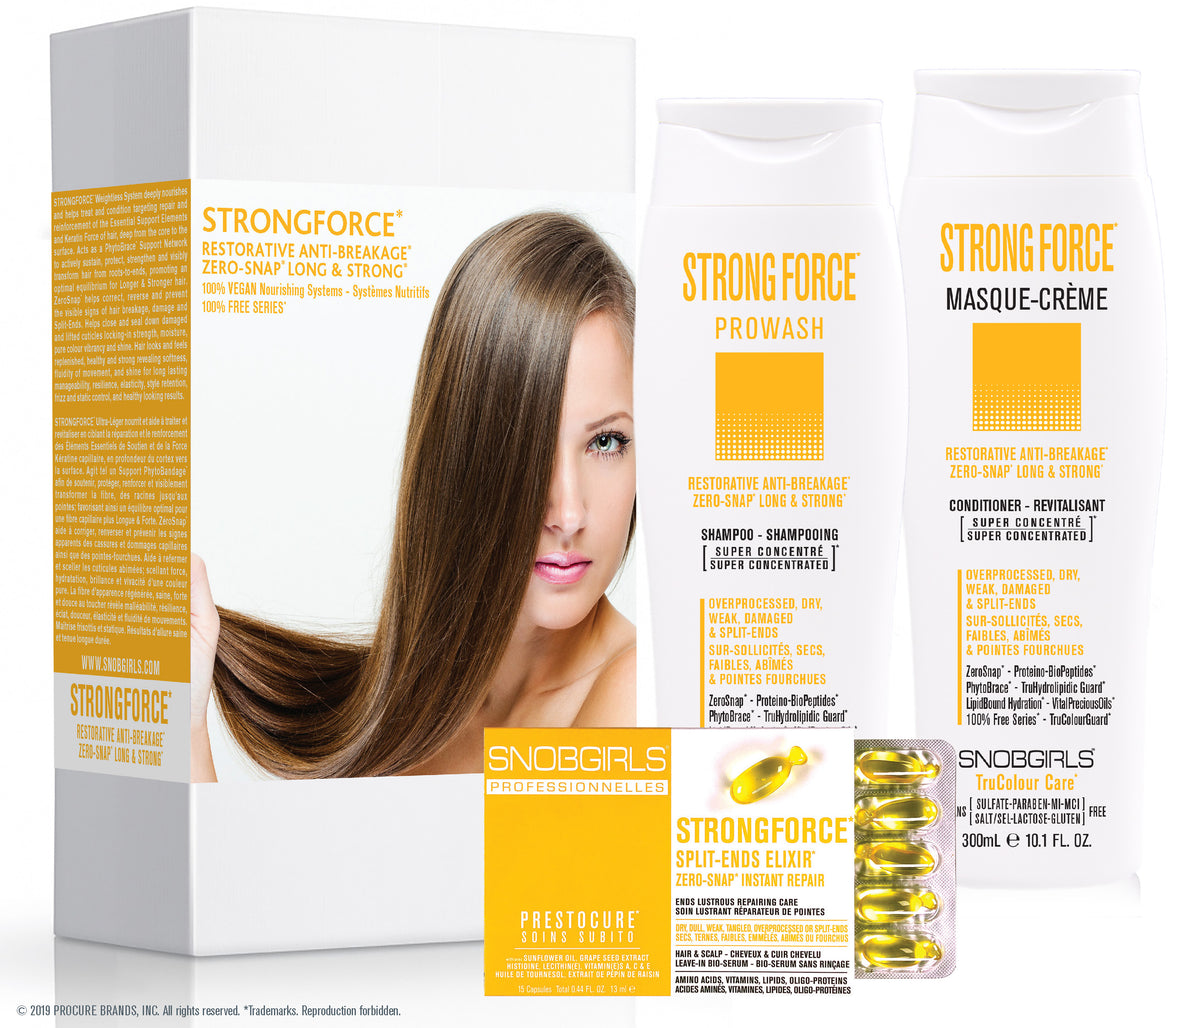 TRIO BOX STRONGFORCE RESTORATIVE ANTI-BREAKAGE